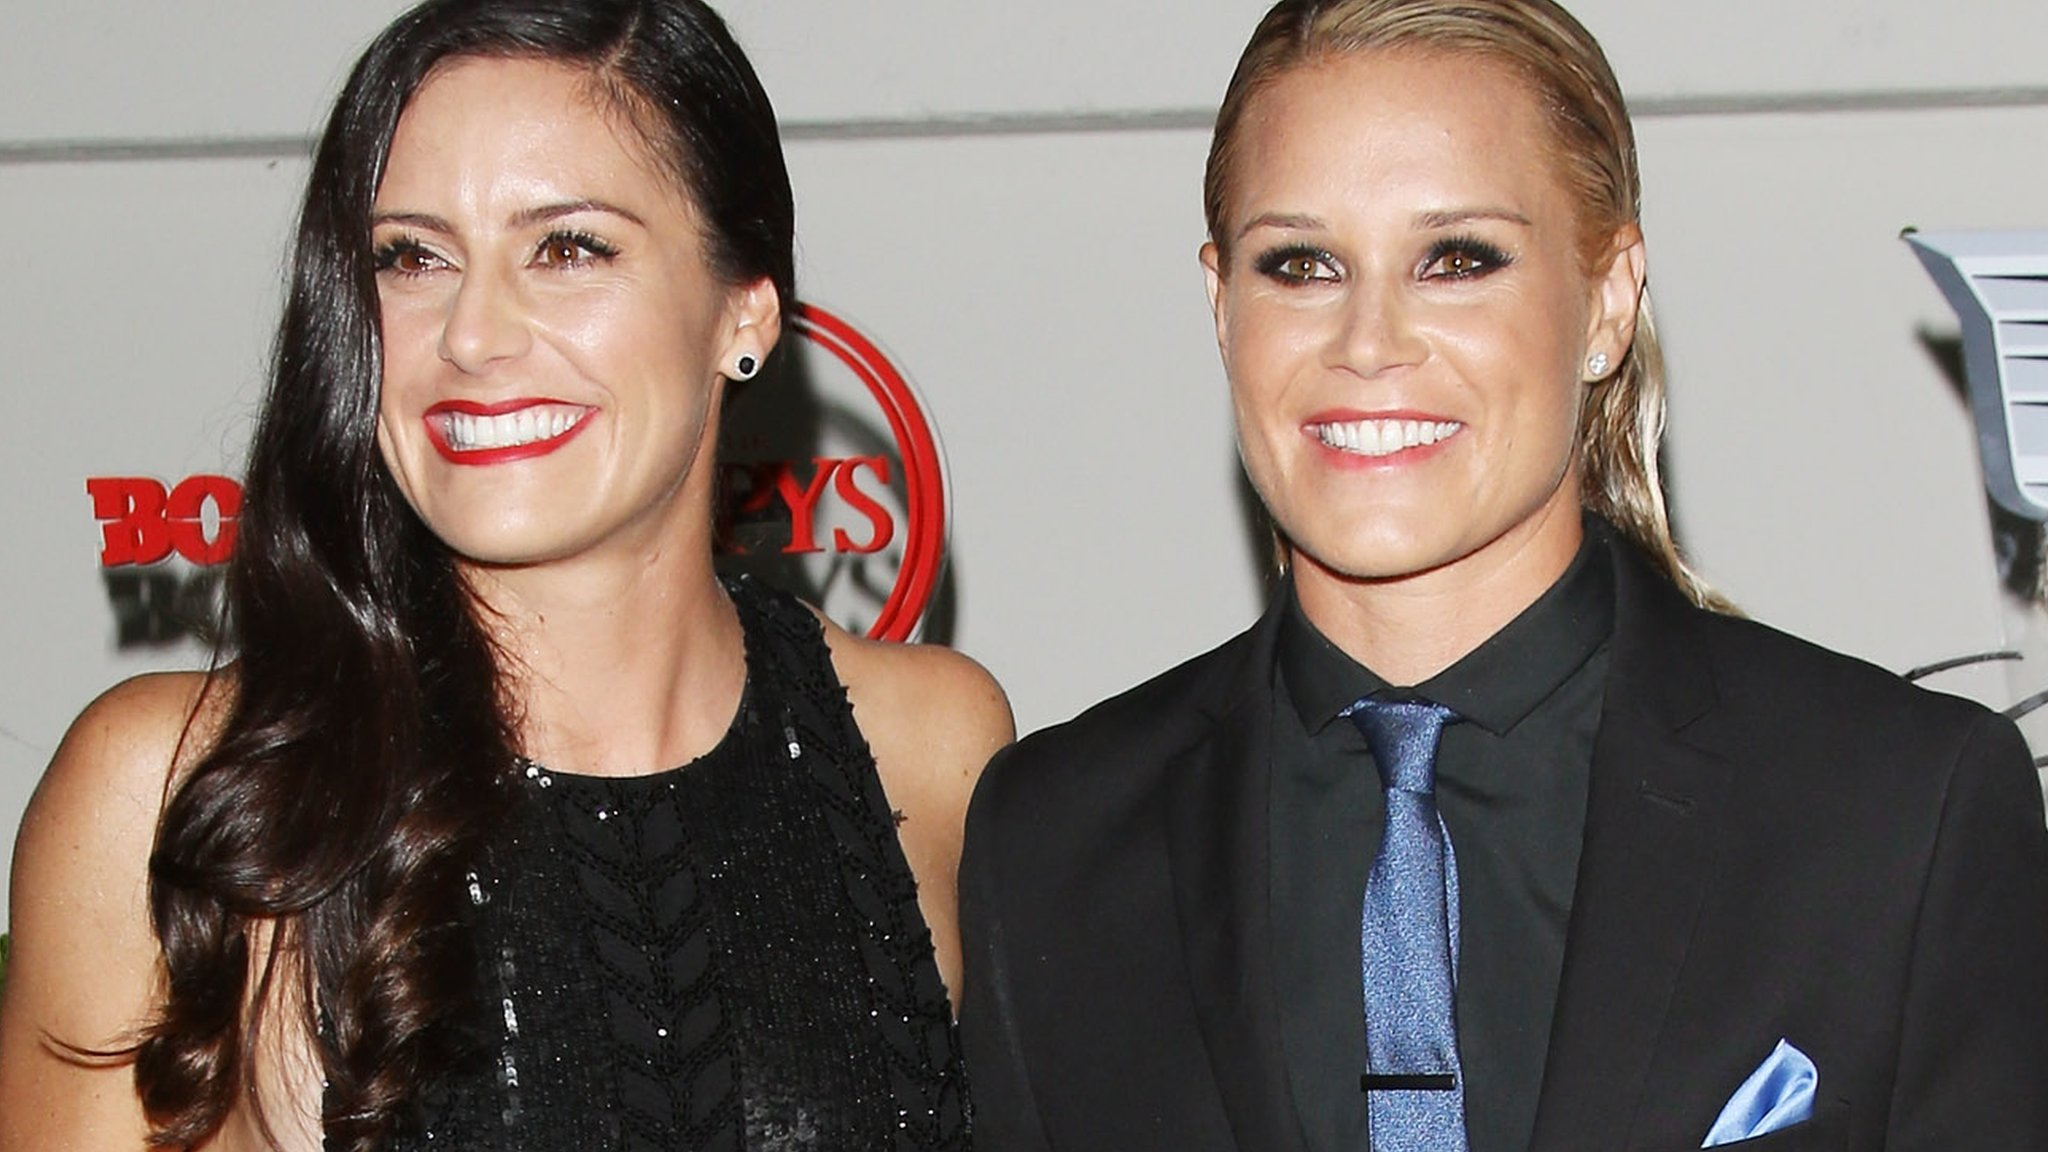 Ali Krieger and Ashlyn Harris: USA's World Cup winners announce engagement